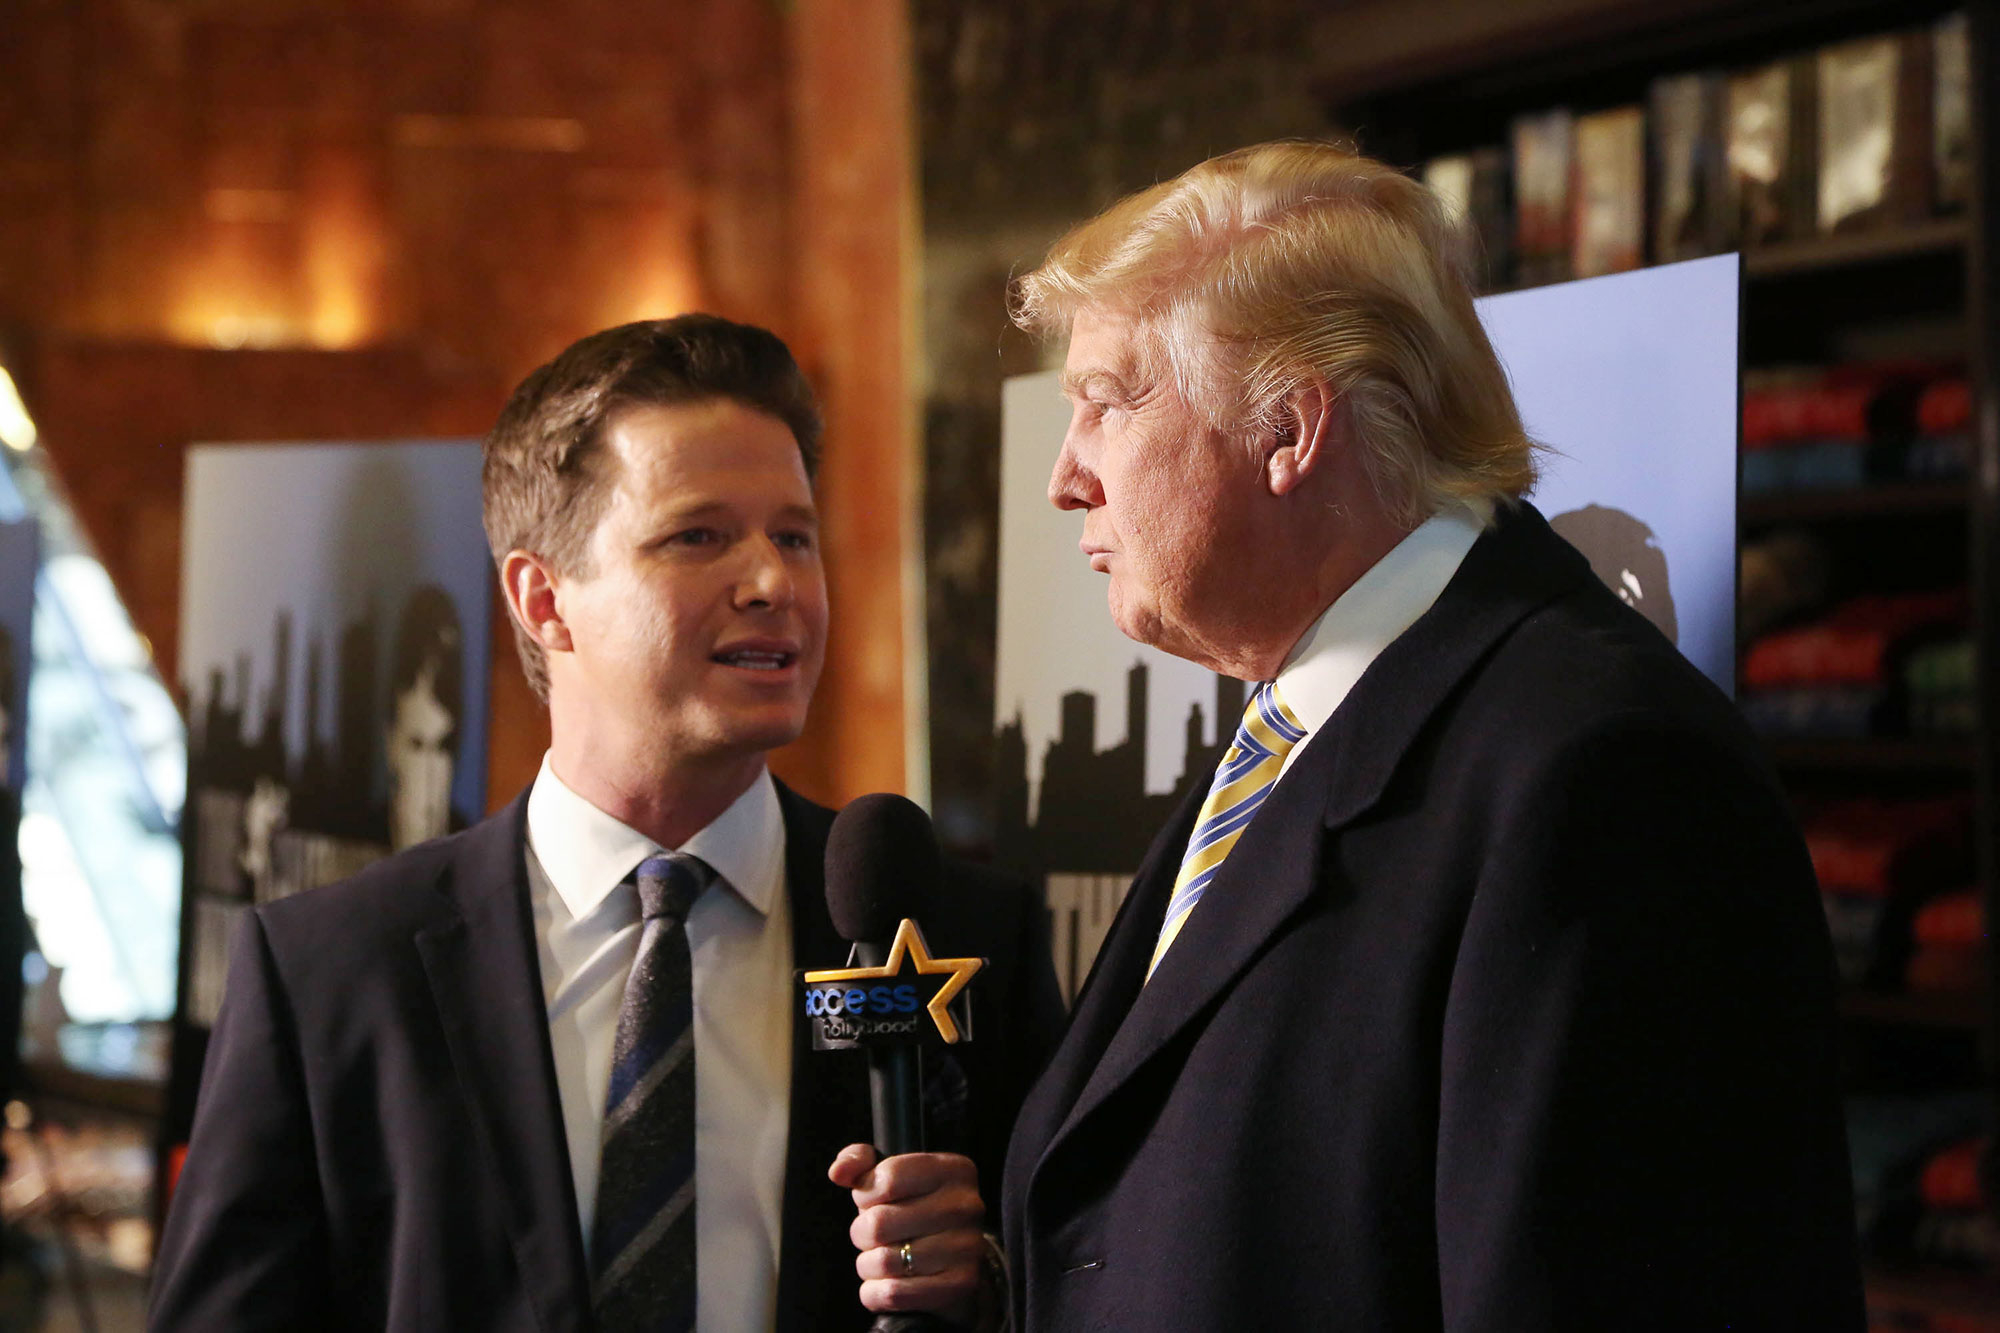 Billy Bush and Donald Trump